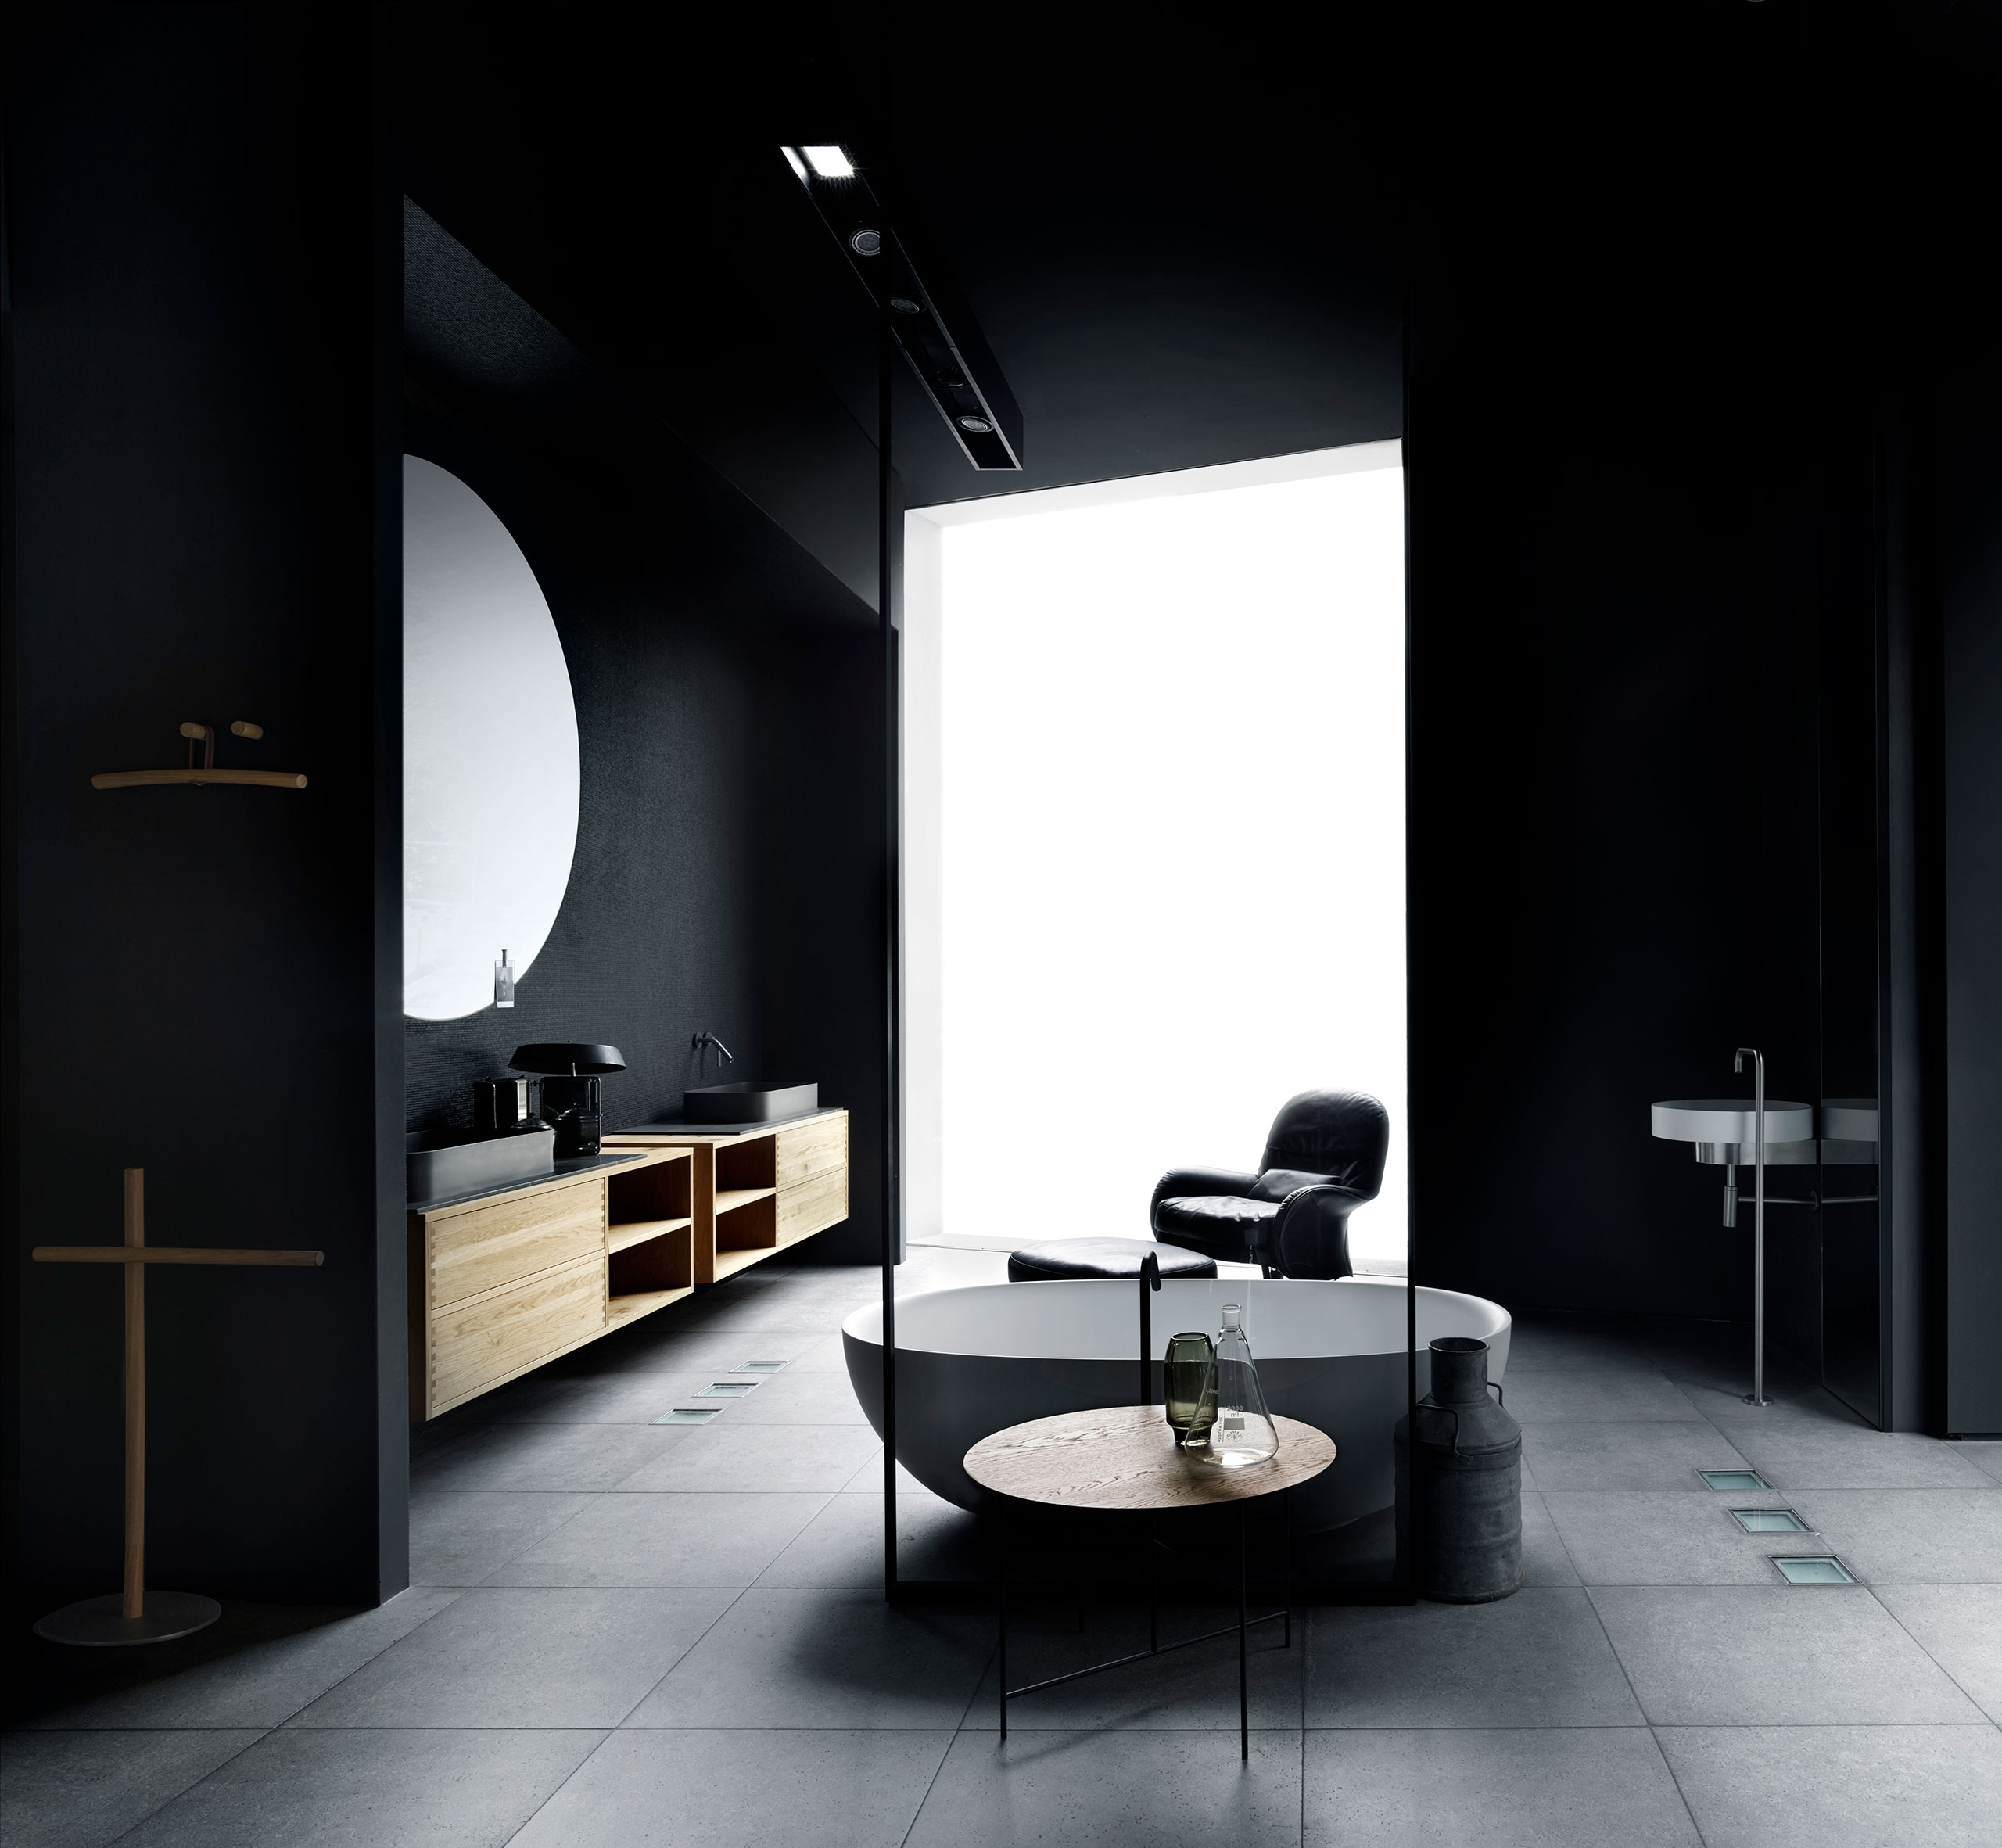 boffi berlin simple cuisine boffi good boffi boffi cuisines dudays with cuisine boffi with. Black Bedroom Furniture Sets. Home Design Ideas